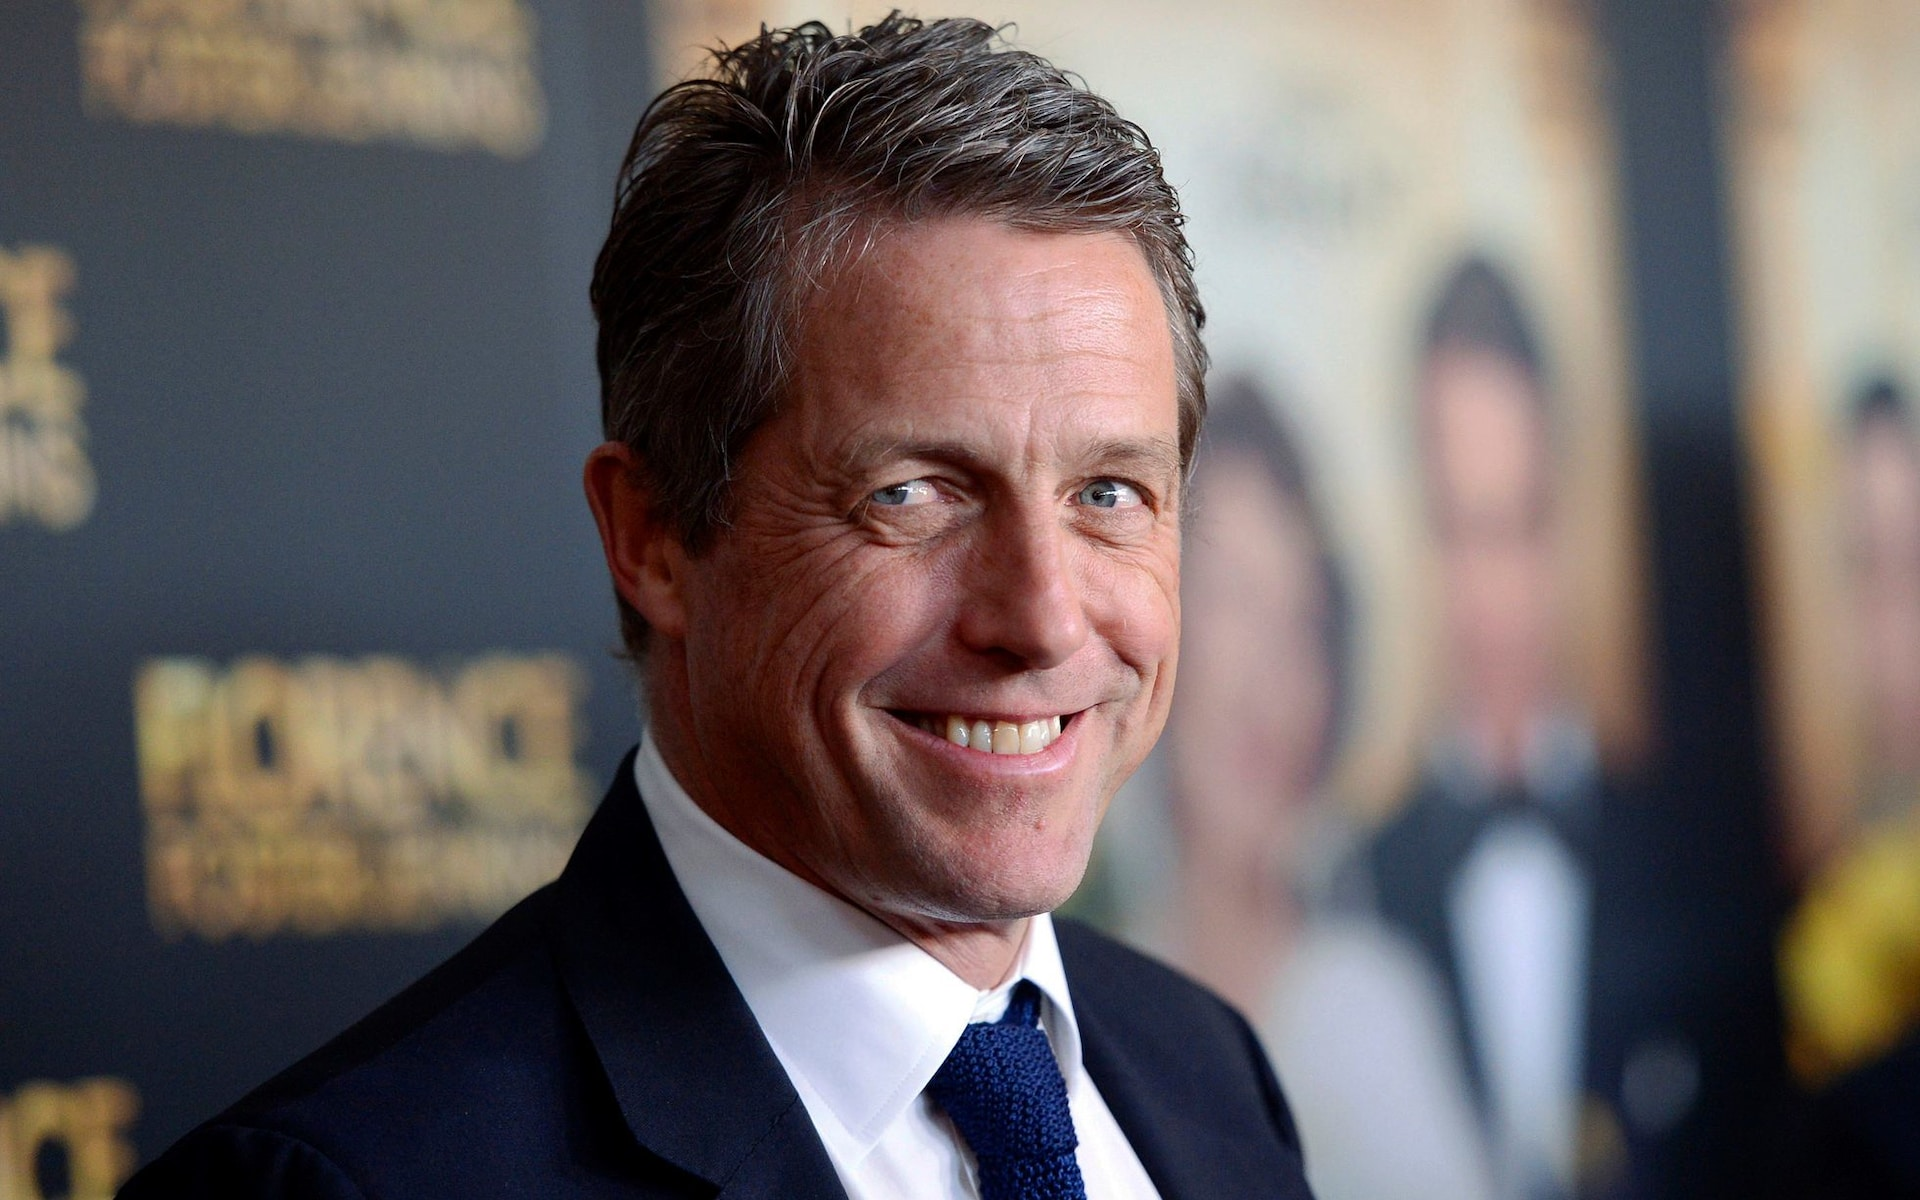 Hugh Grant is NOT Banned from University Property